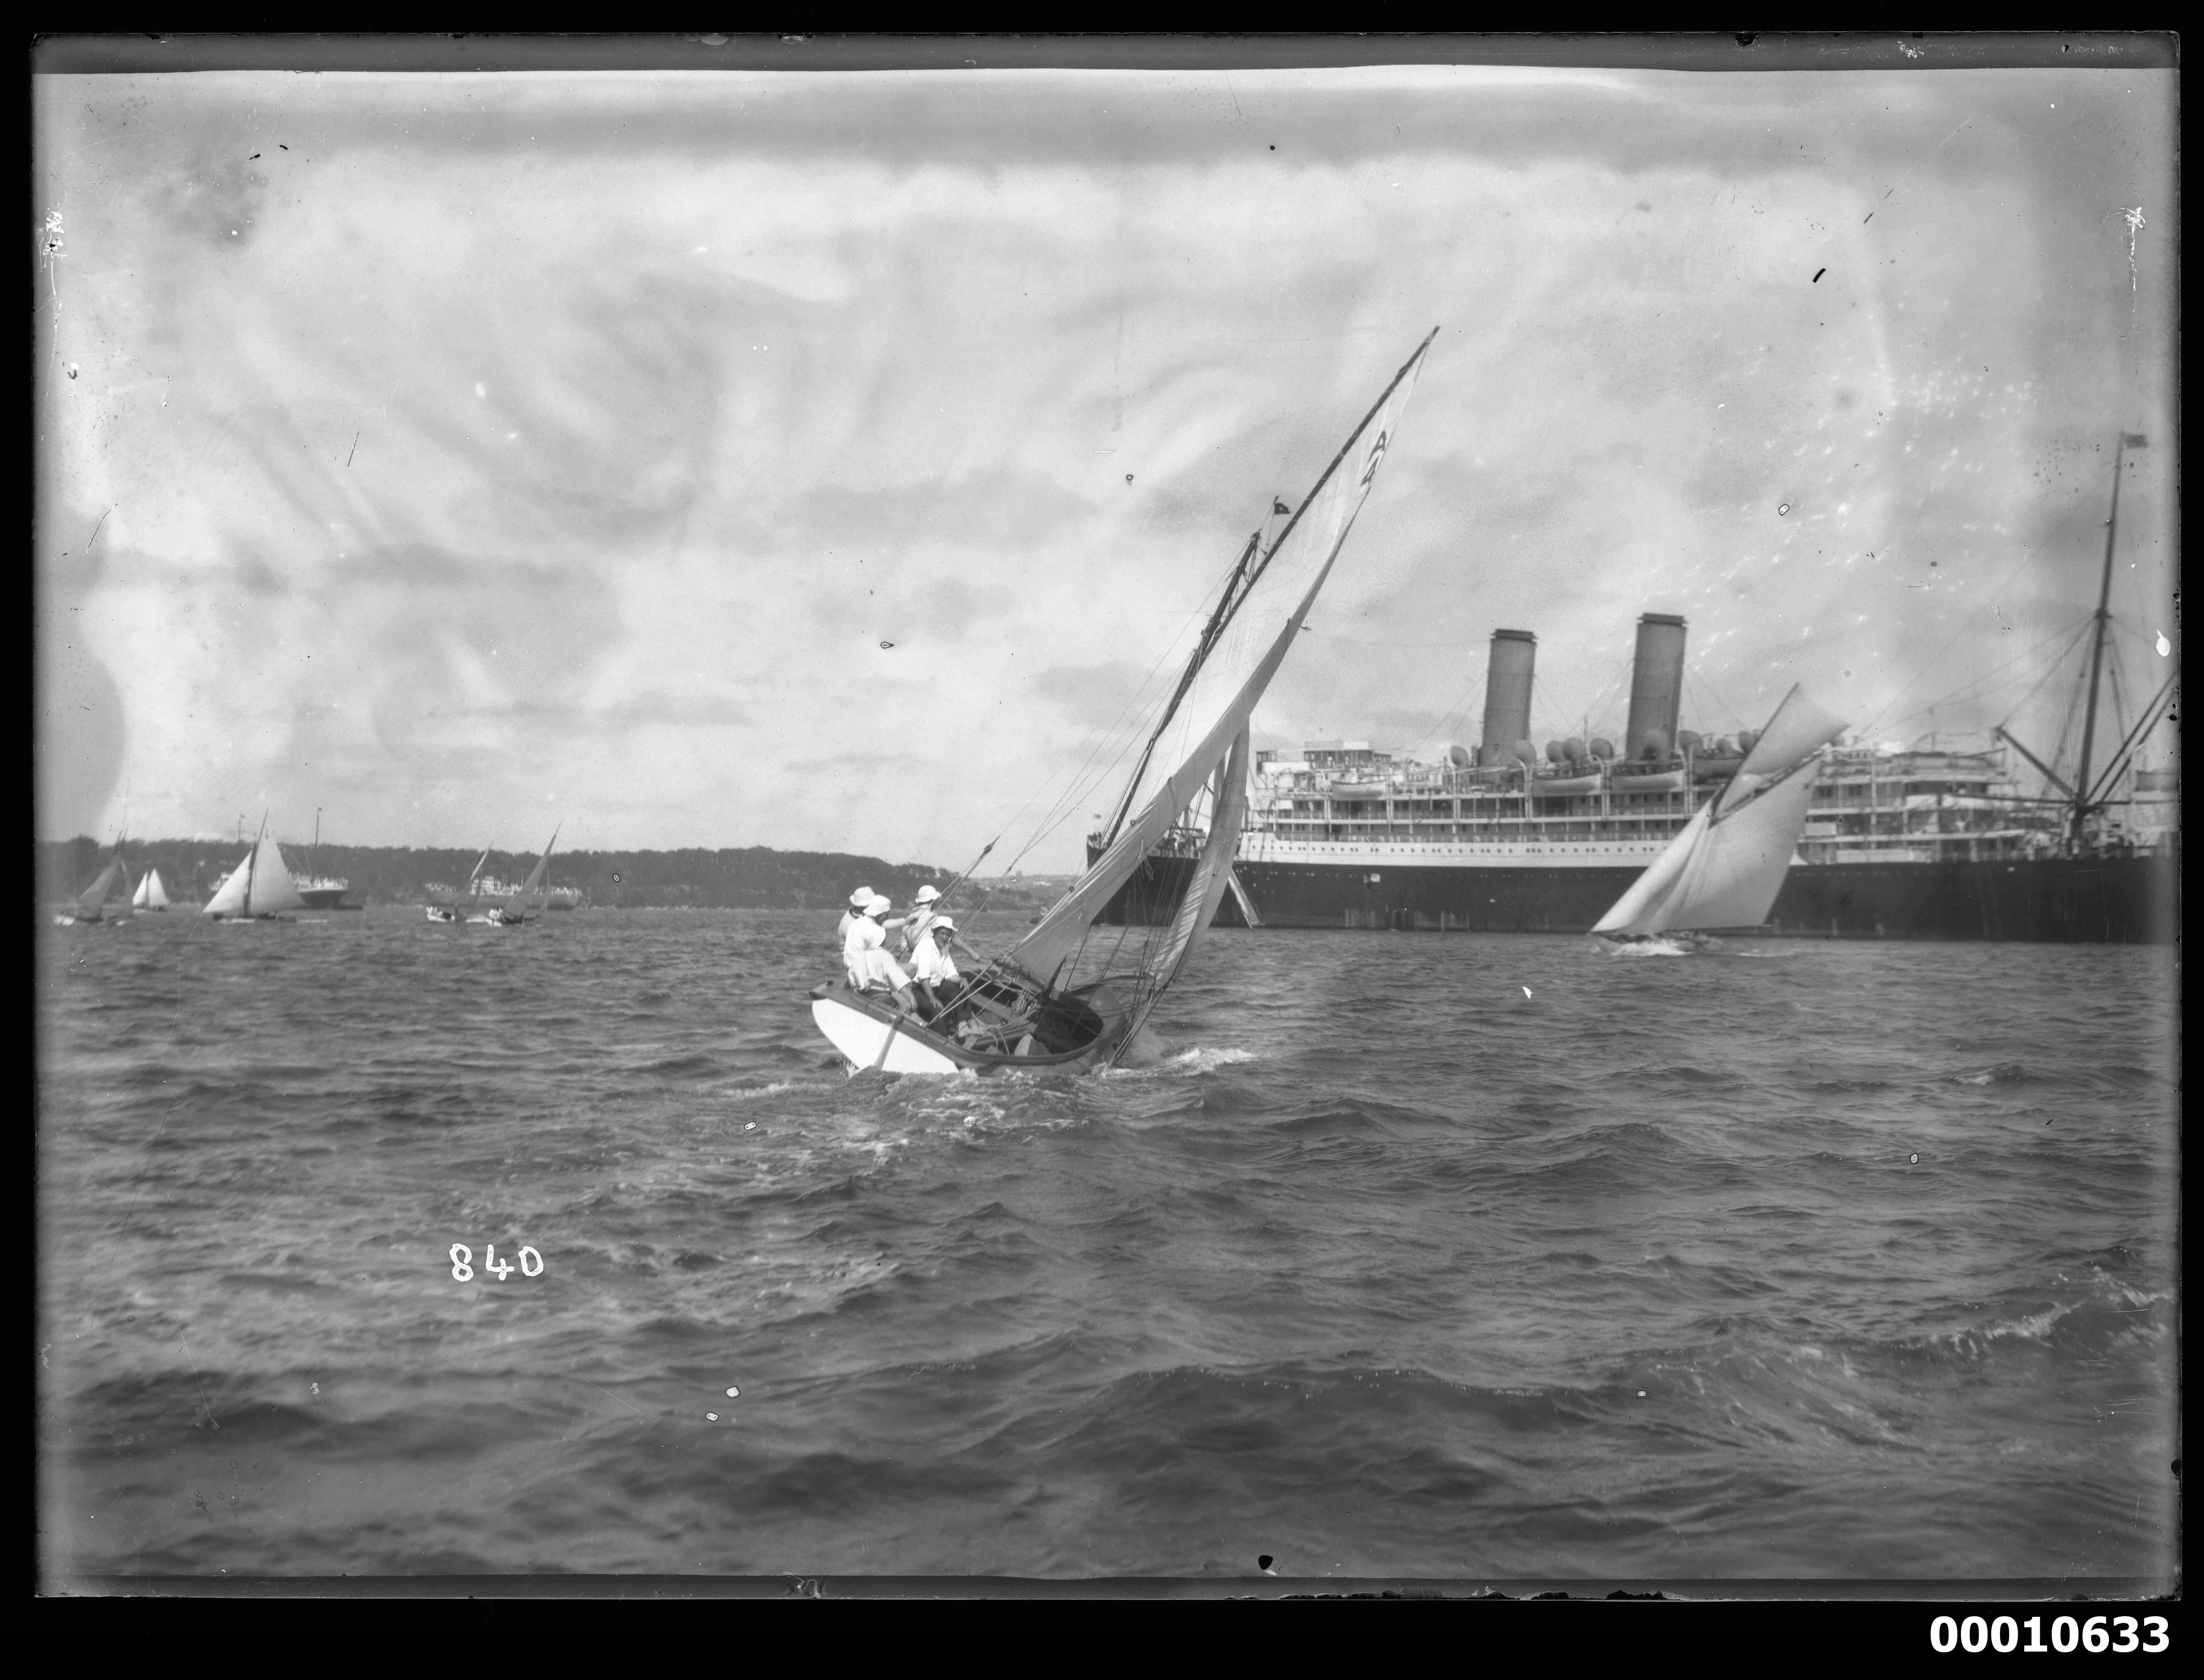 18 footer and ocean liner, Sydney Harbour